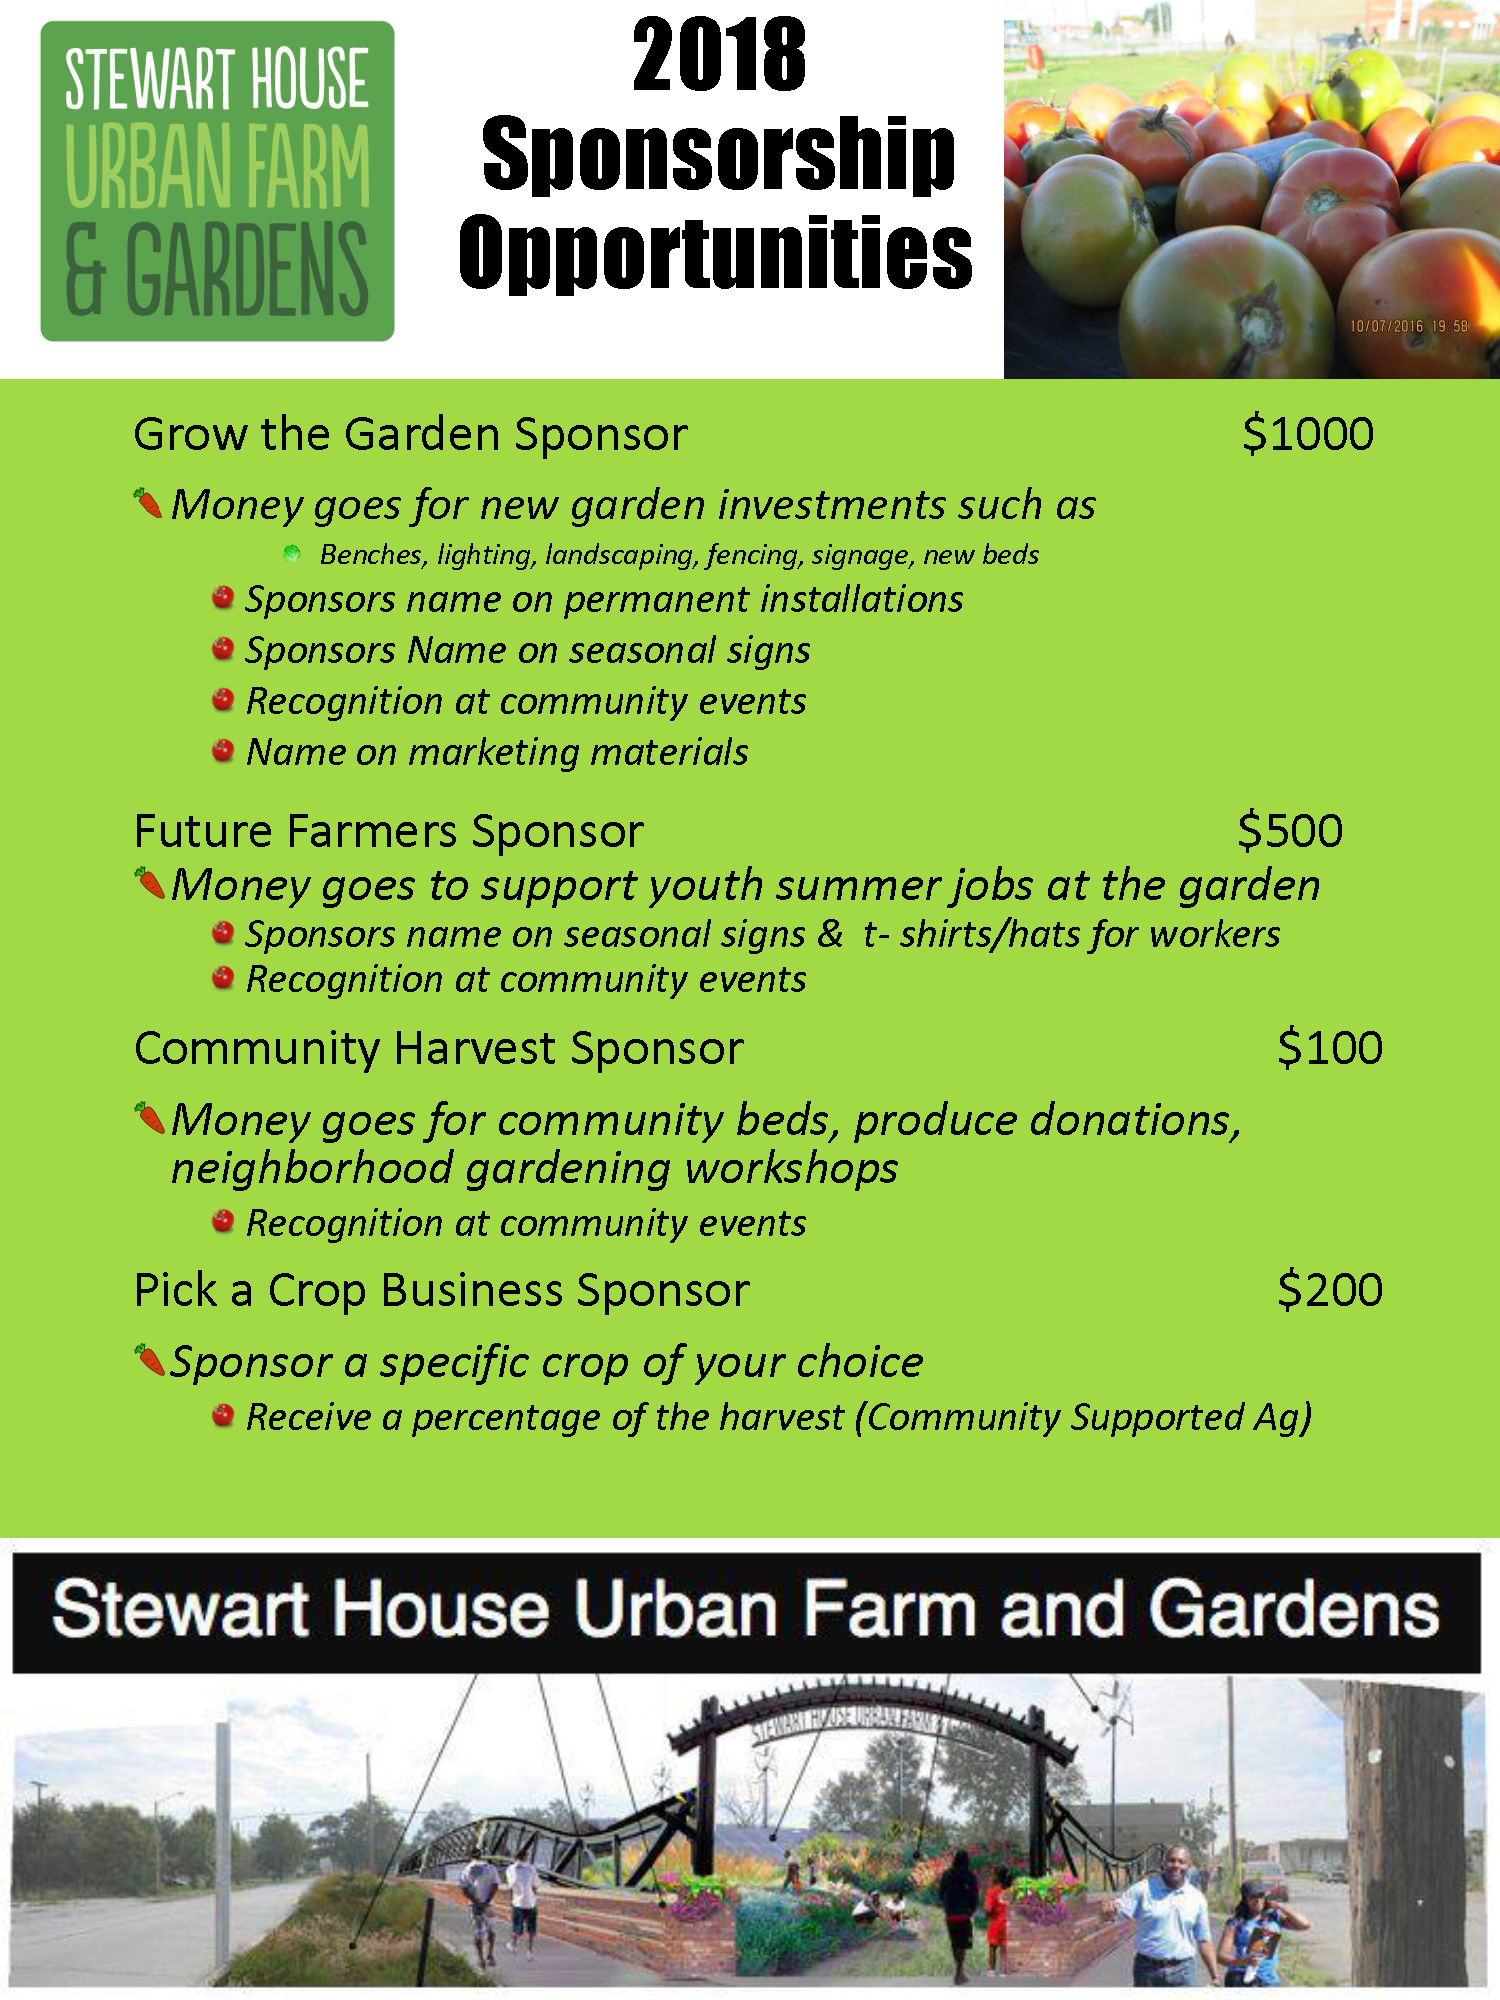 SHUFG flyers_Page_3.png